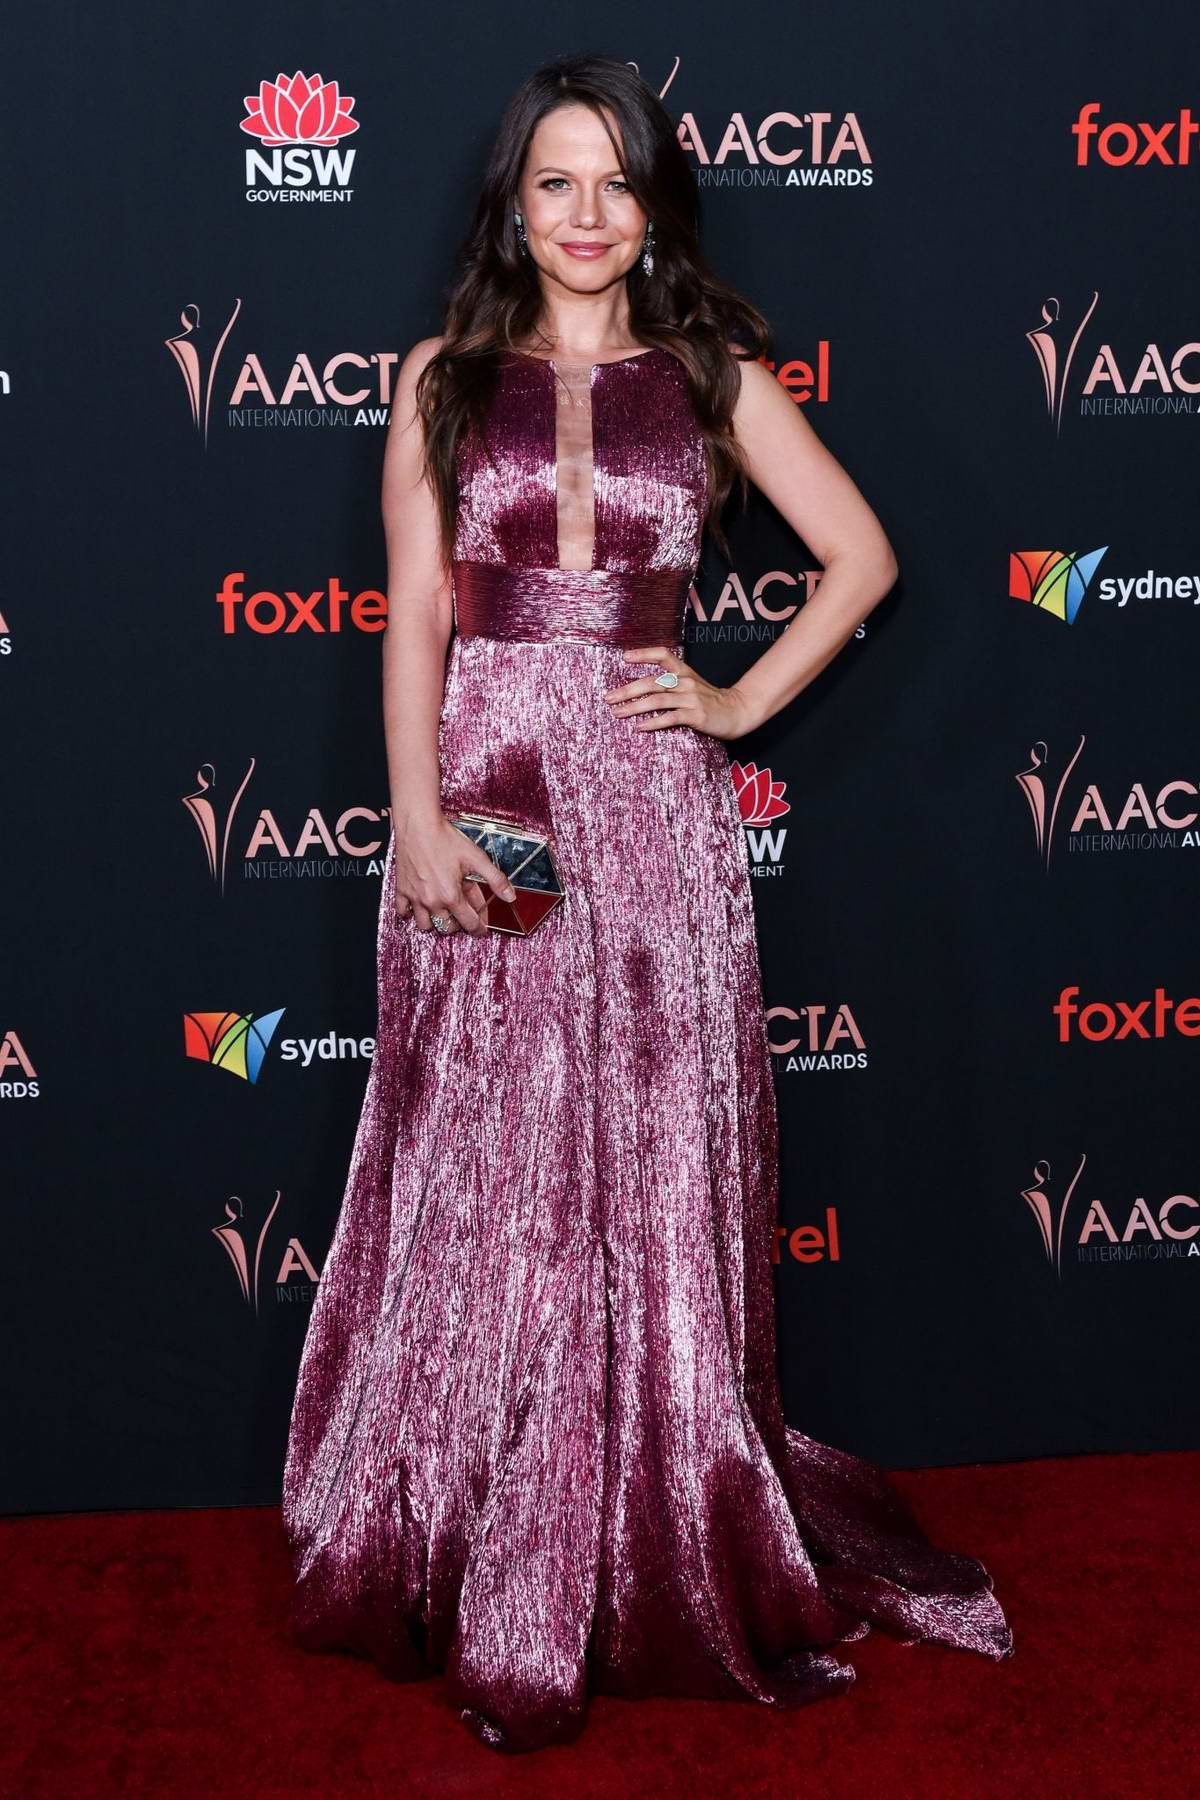 Tammin Sursok attends the 9th Annual AACTA International Awards at the Mondrian Los Angeles